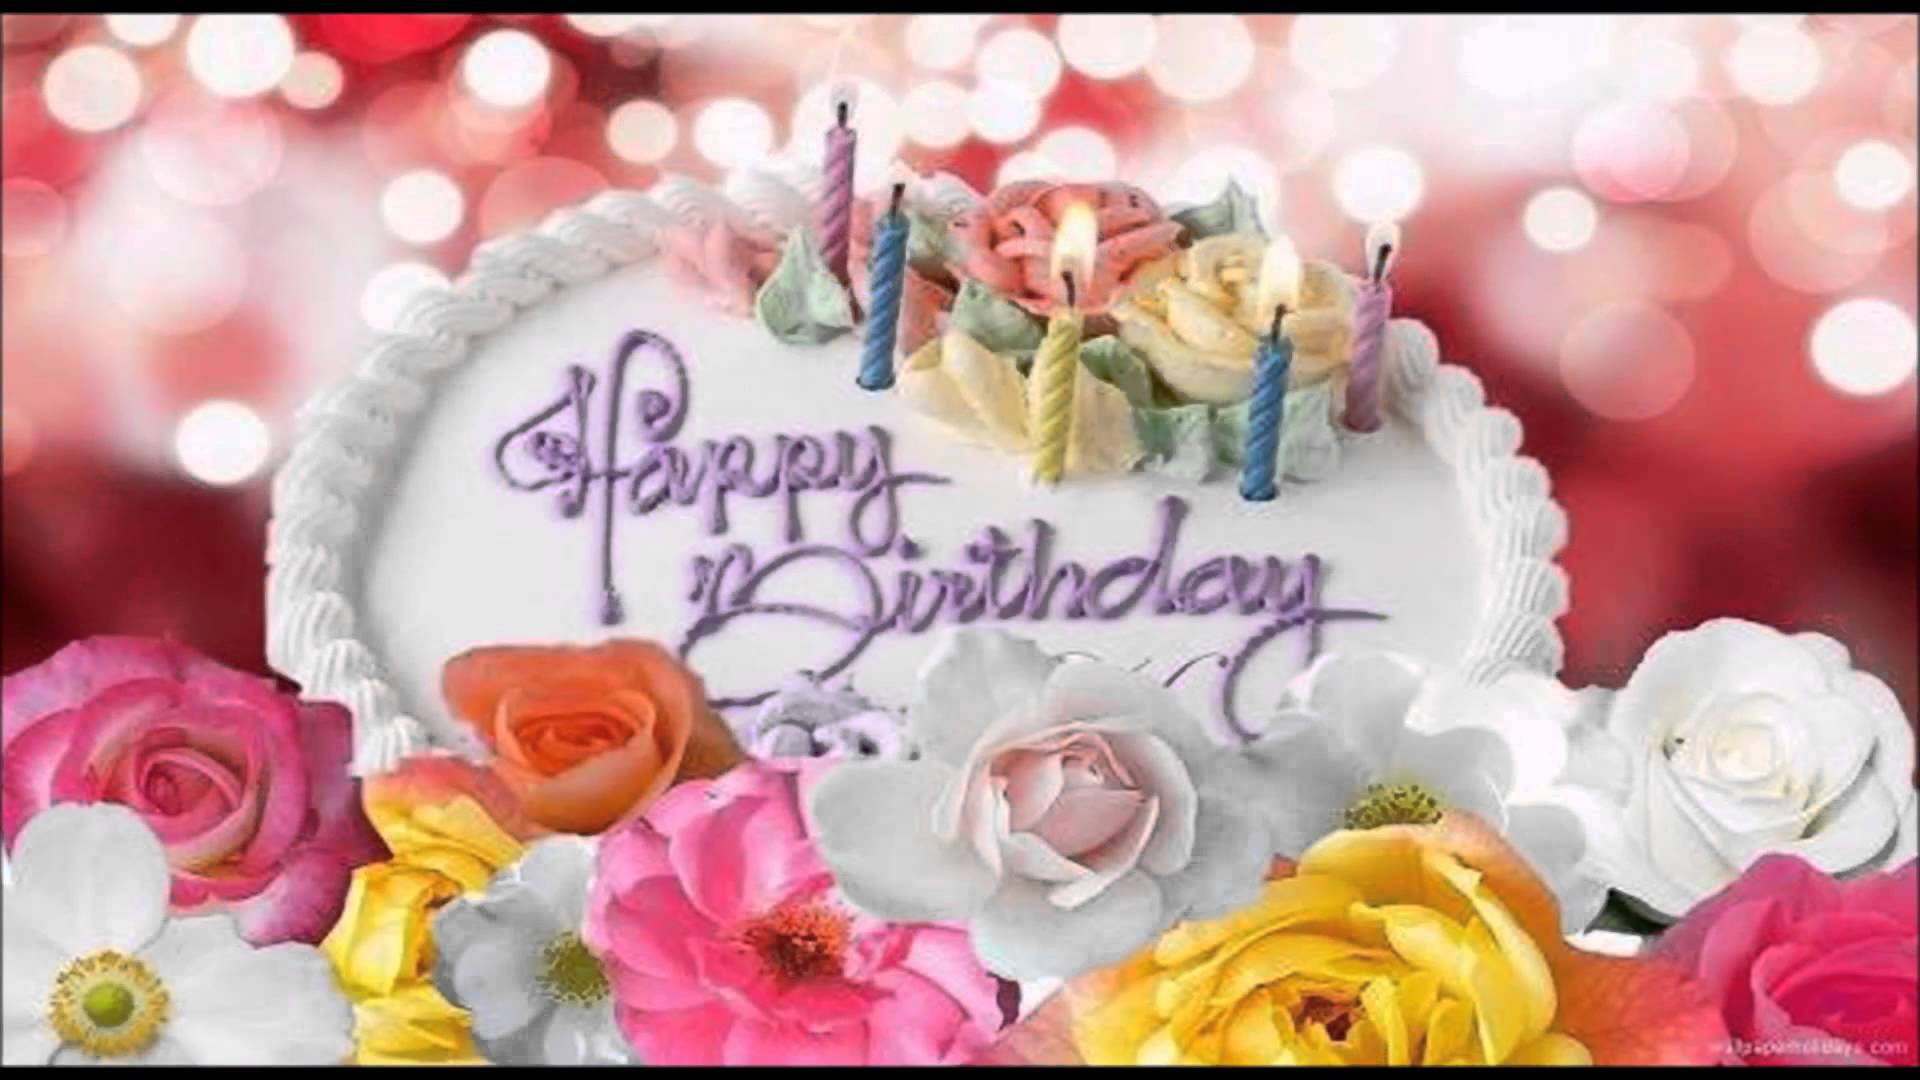 birthday wishes images free download ; maxresdefault